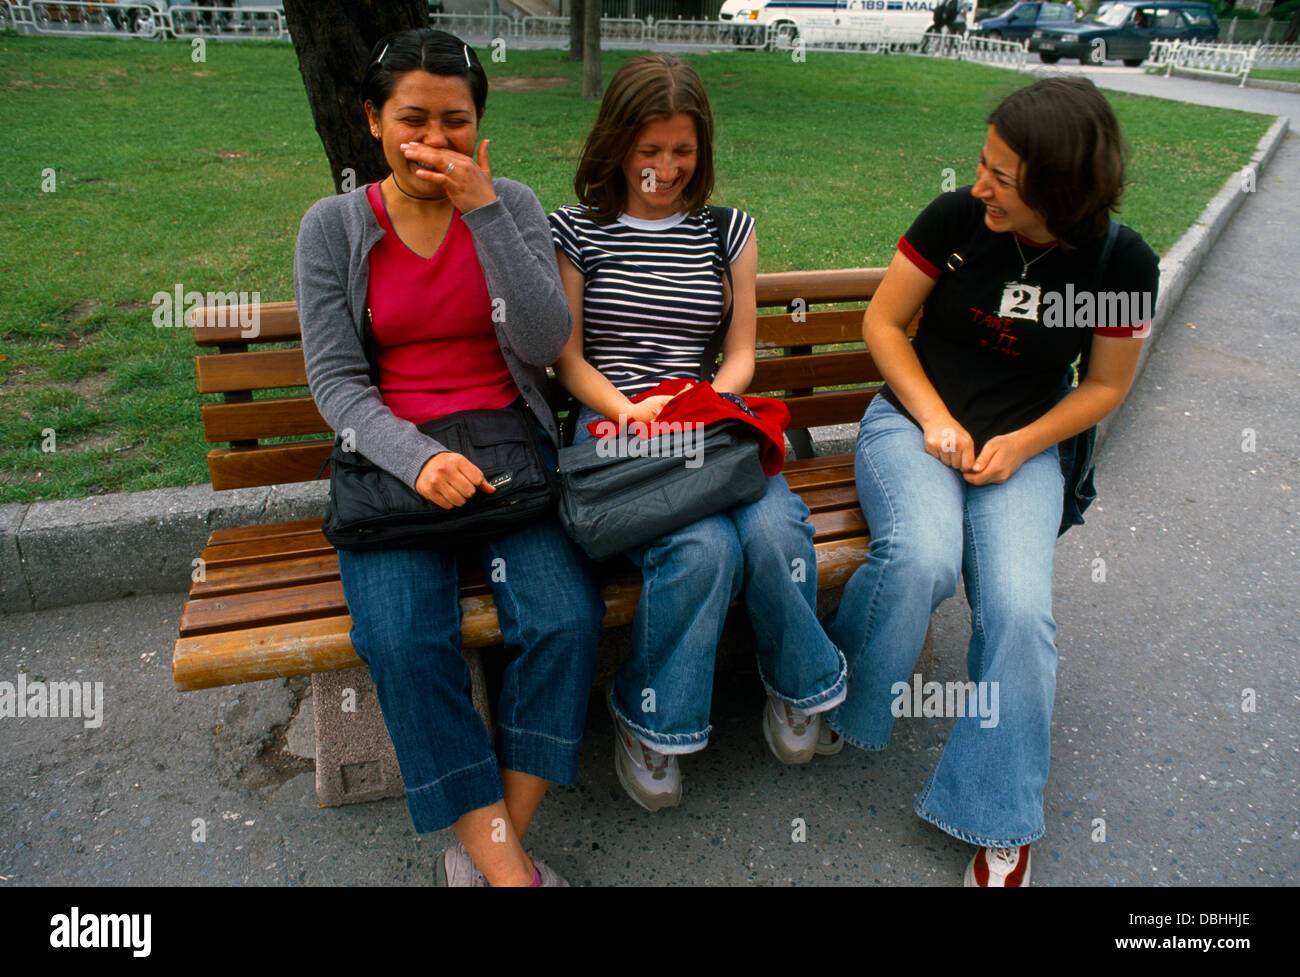 Istanbul Turkey Teenage School Girls Having A Chat Sitting On Park Bench - Stock Image